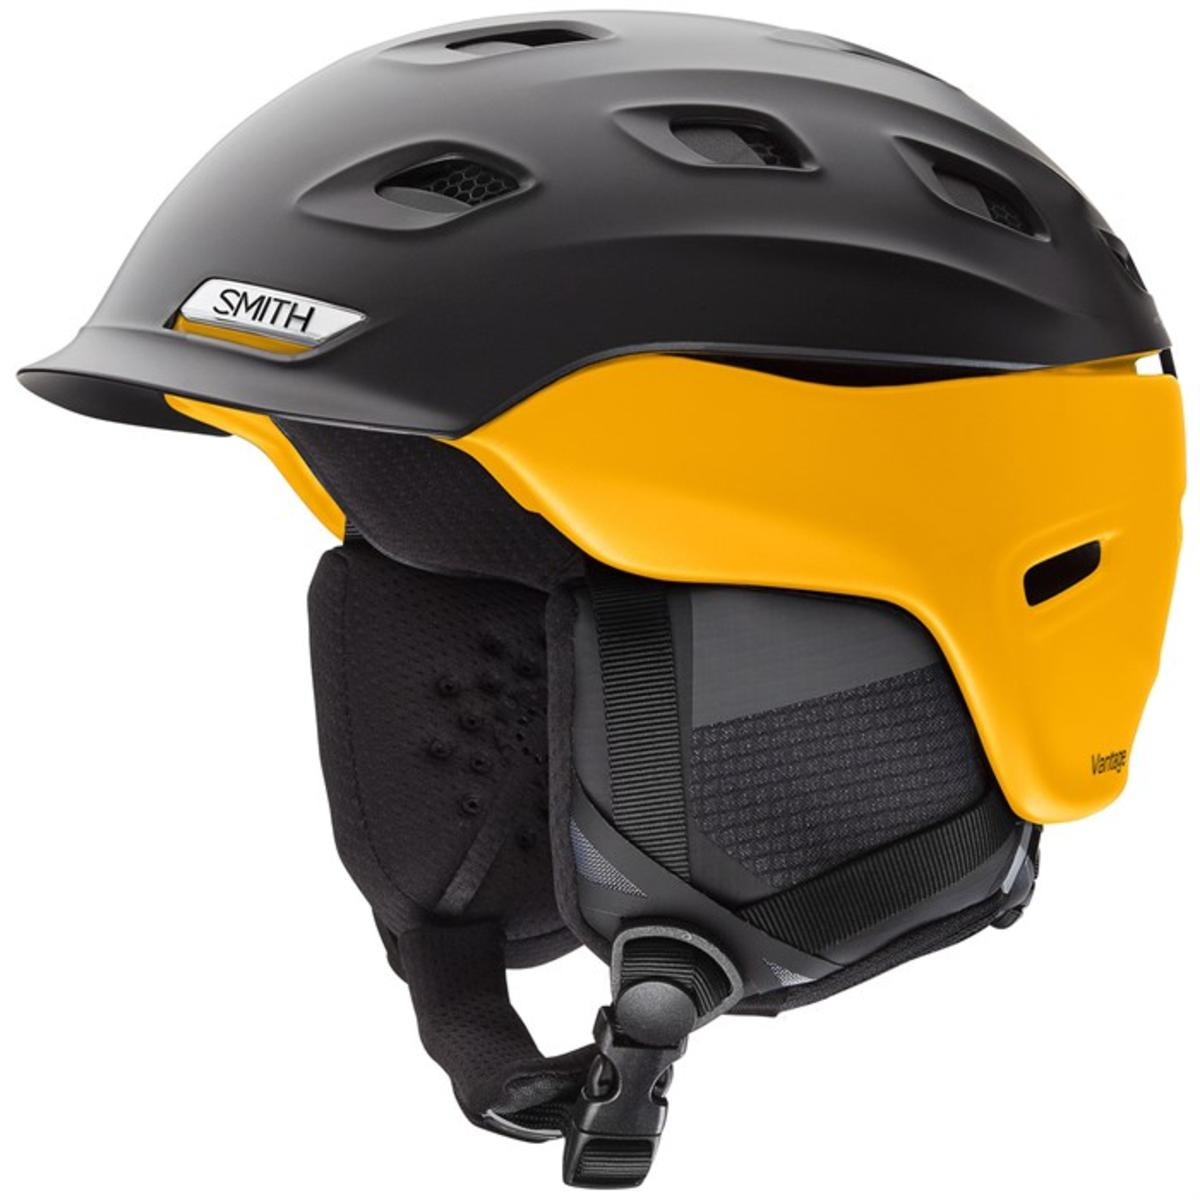 Smith Vantage MIPS Men's Helmet